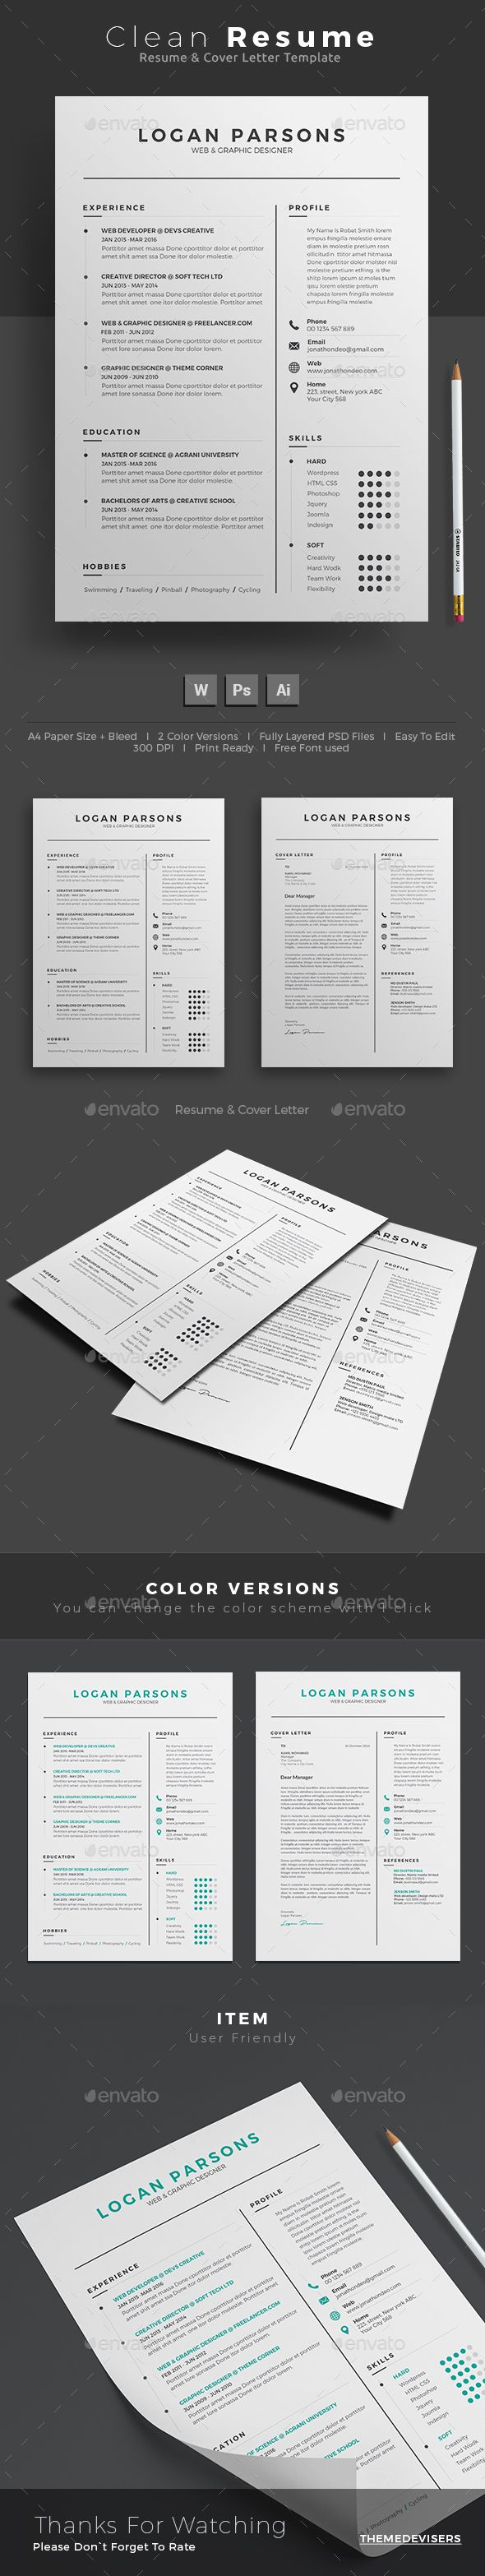 Resume 114 best Resume Templates images on